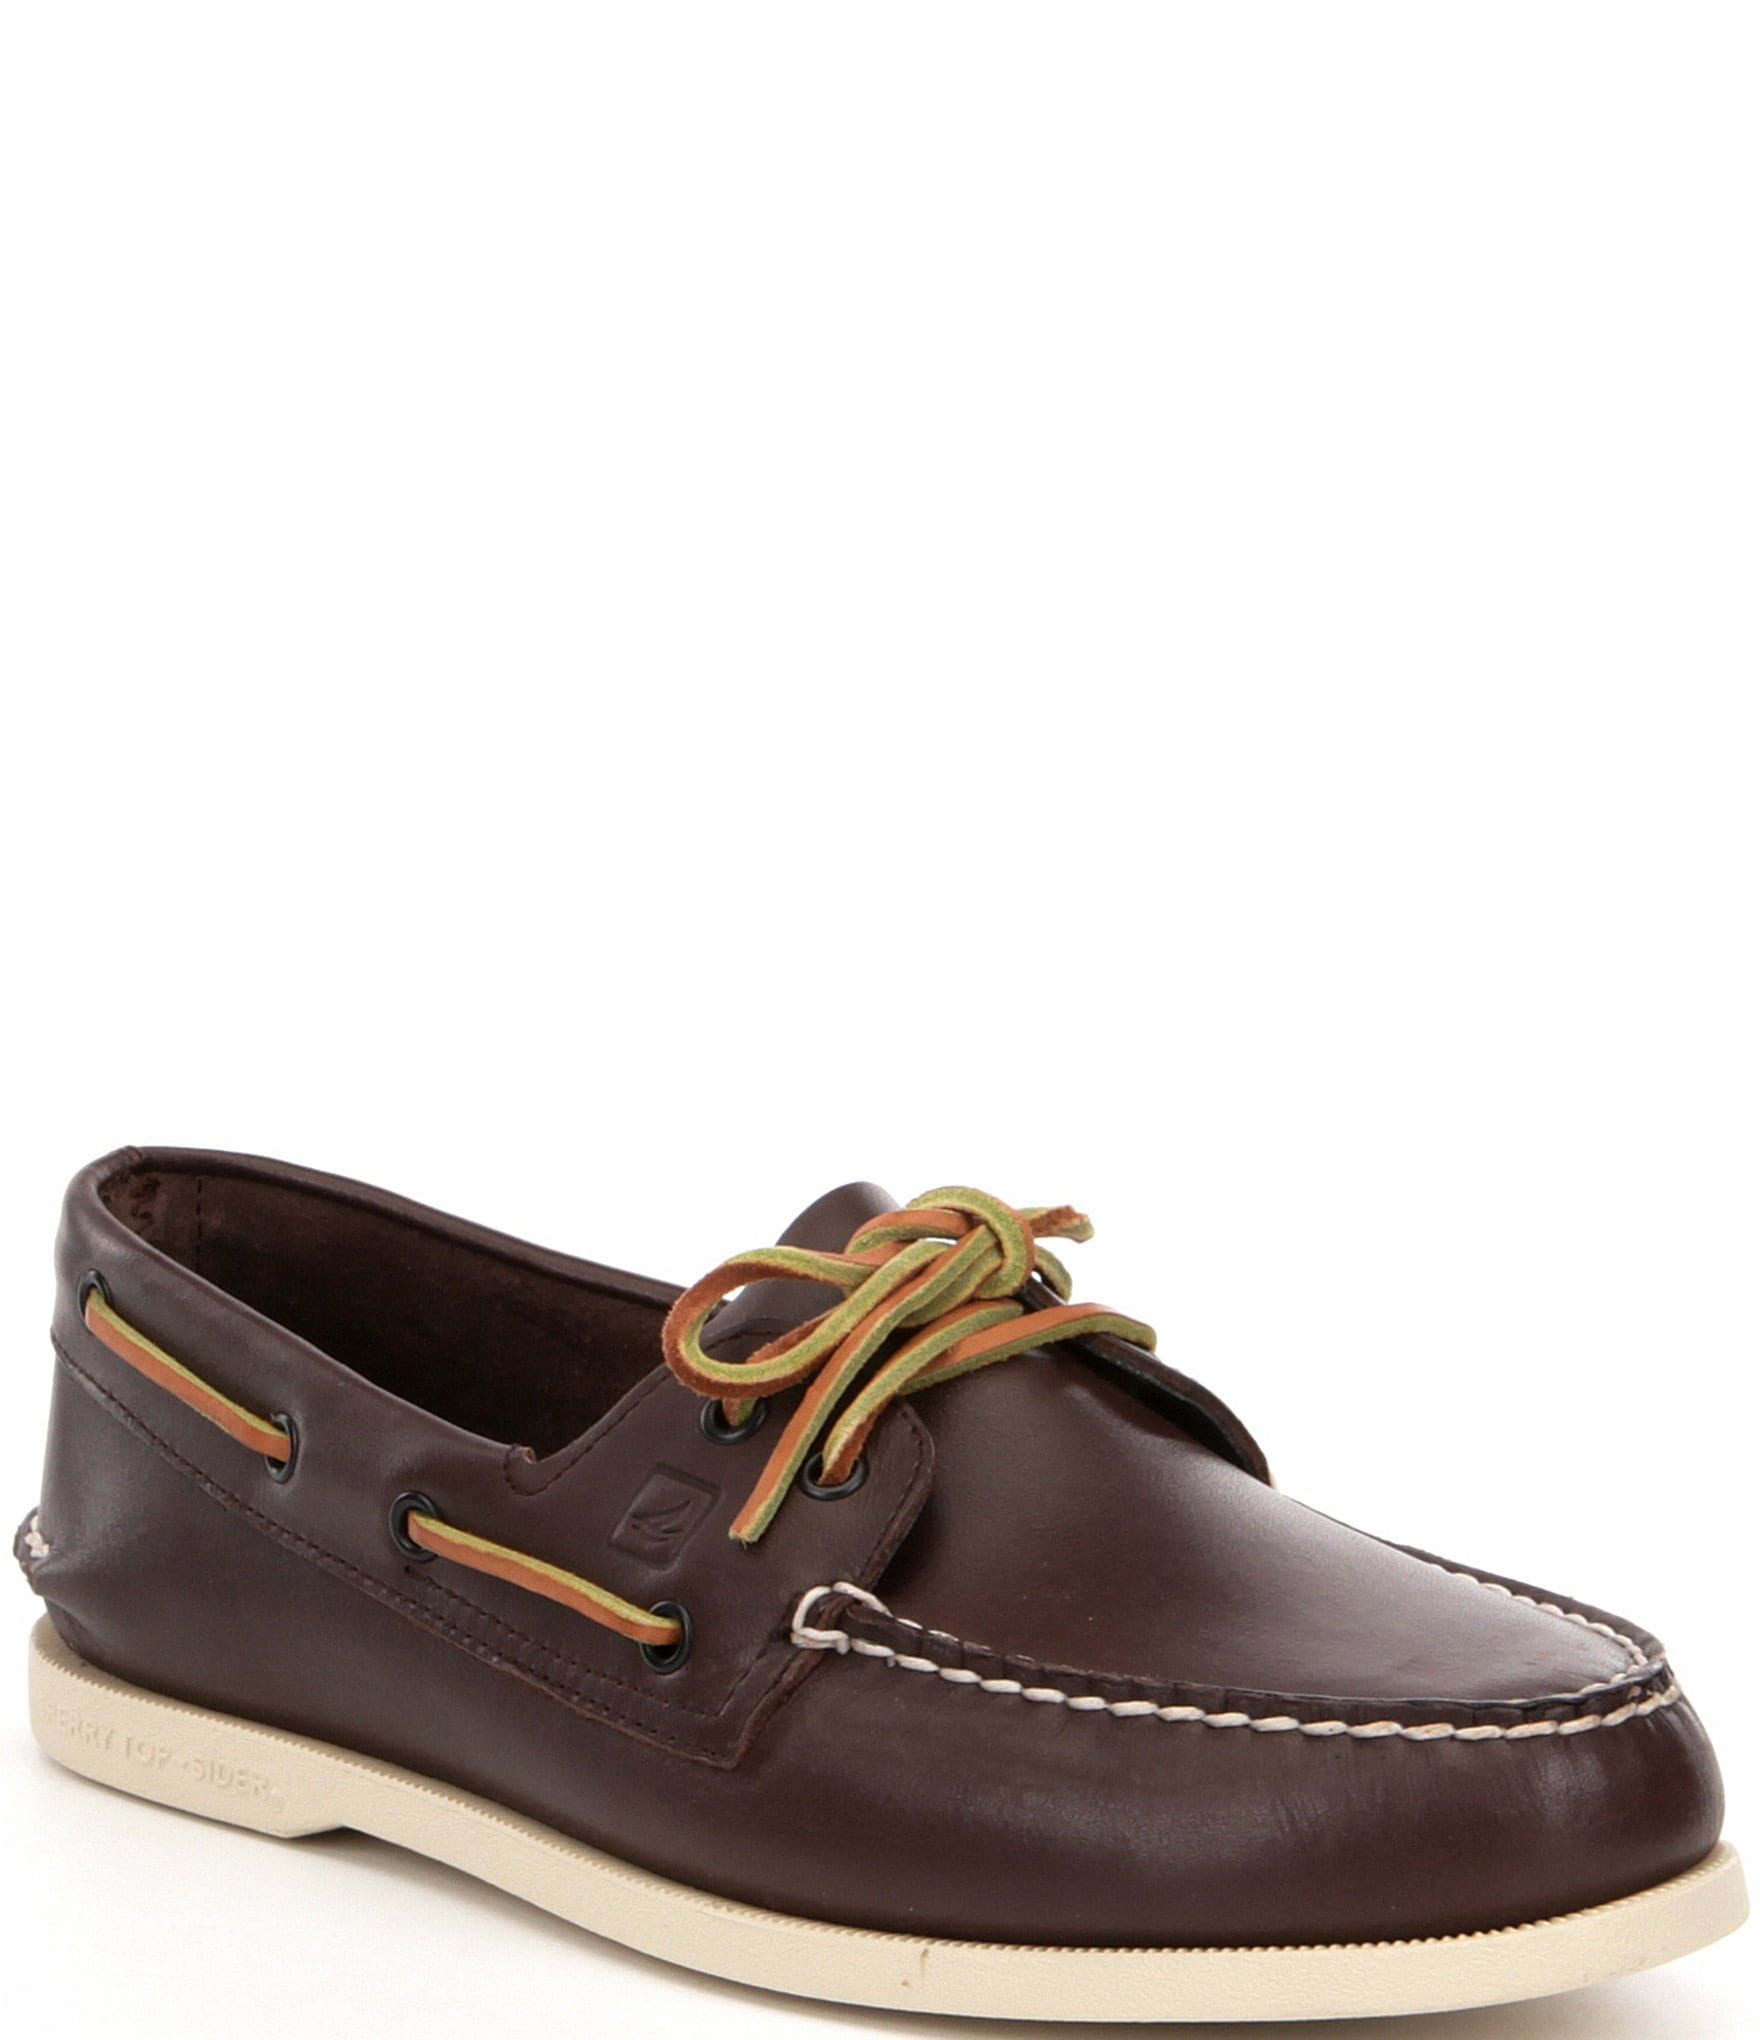 699dd29c Sperry Men's Top-Sider Authentic Original 2-Eye Boat Shoes